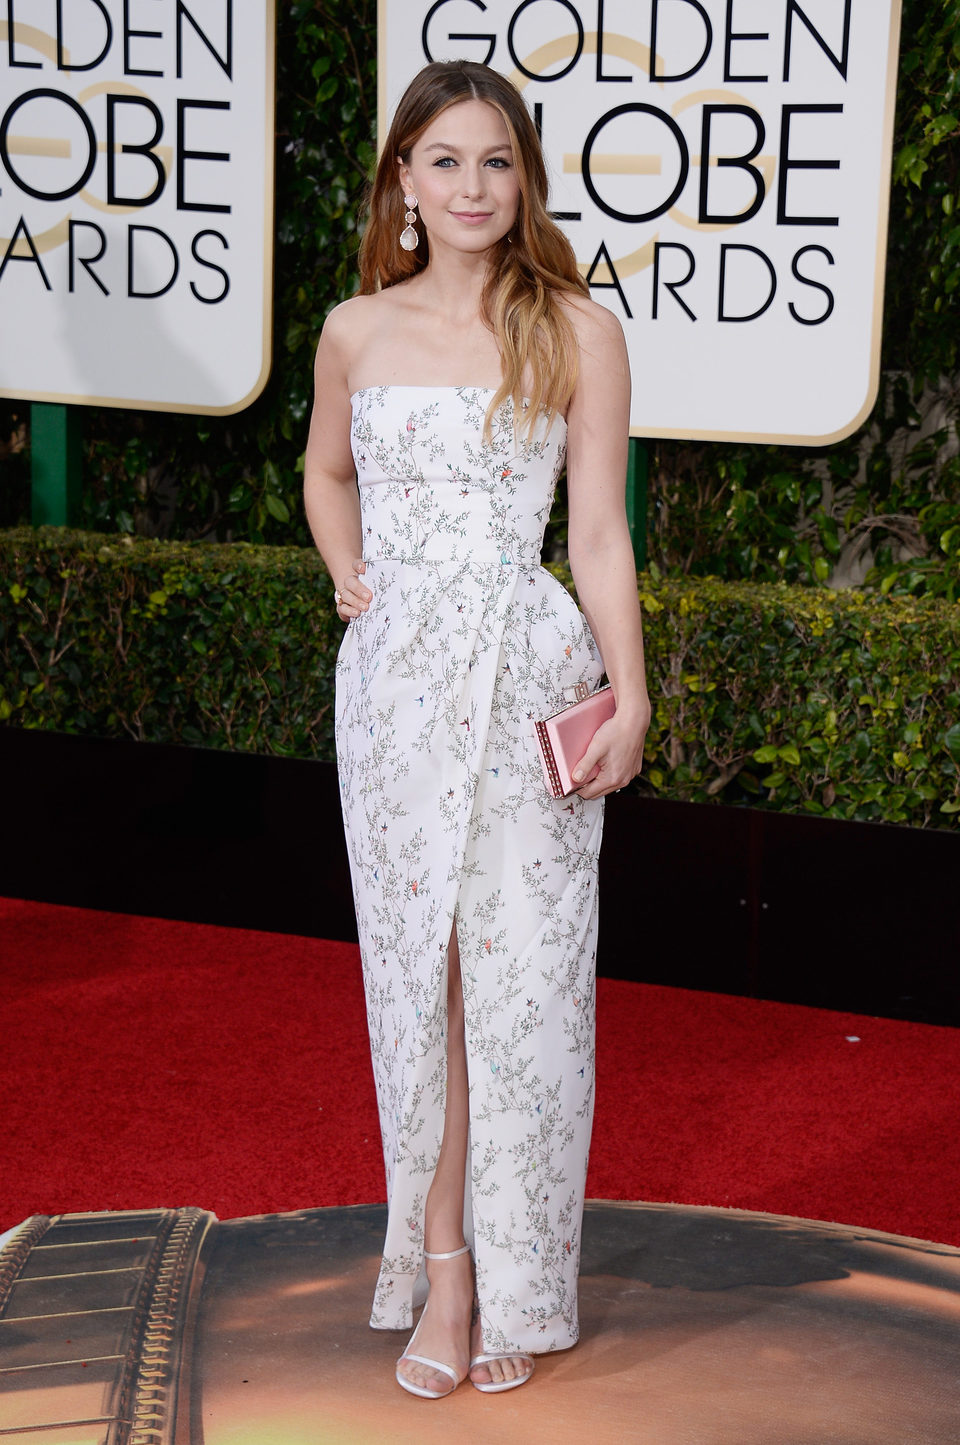 Melissa Benoist in the 2016 Golden Globes red carpet